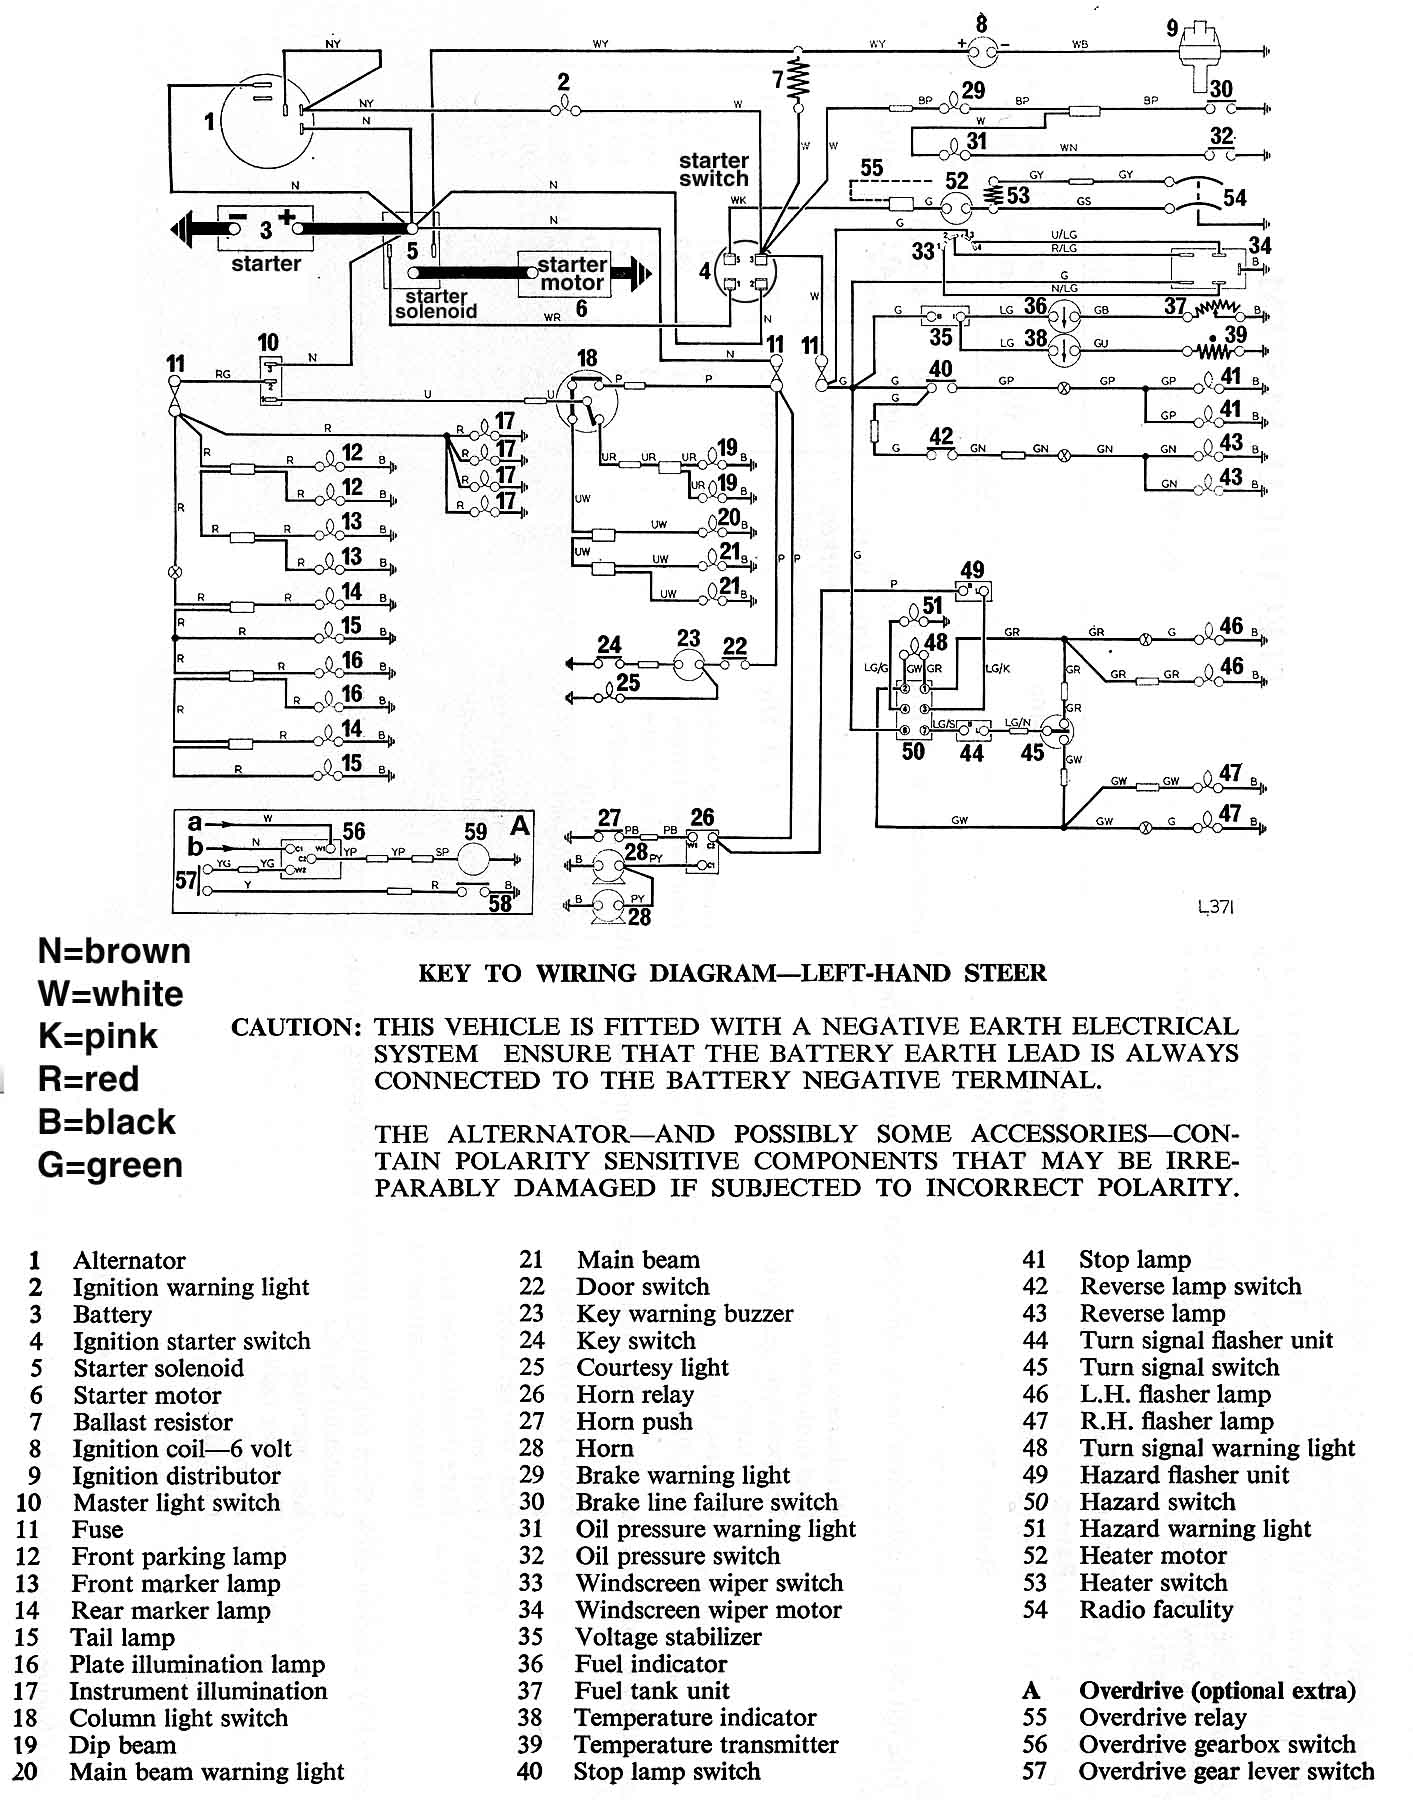 1980 Jeep Cj7 Ignition Switch Wiring Diagram Libraries Horn Schematics And Diagrams Triumph Spitfire Gt6 Heraldspitfire Mkiv